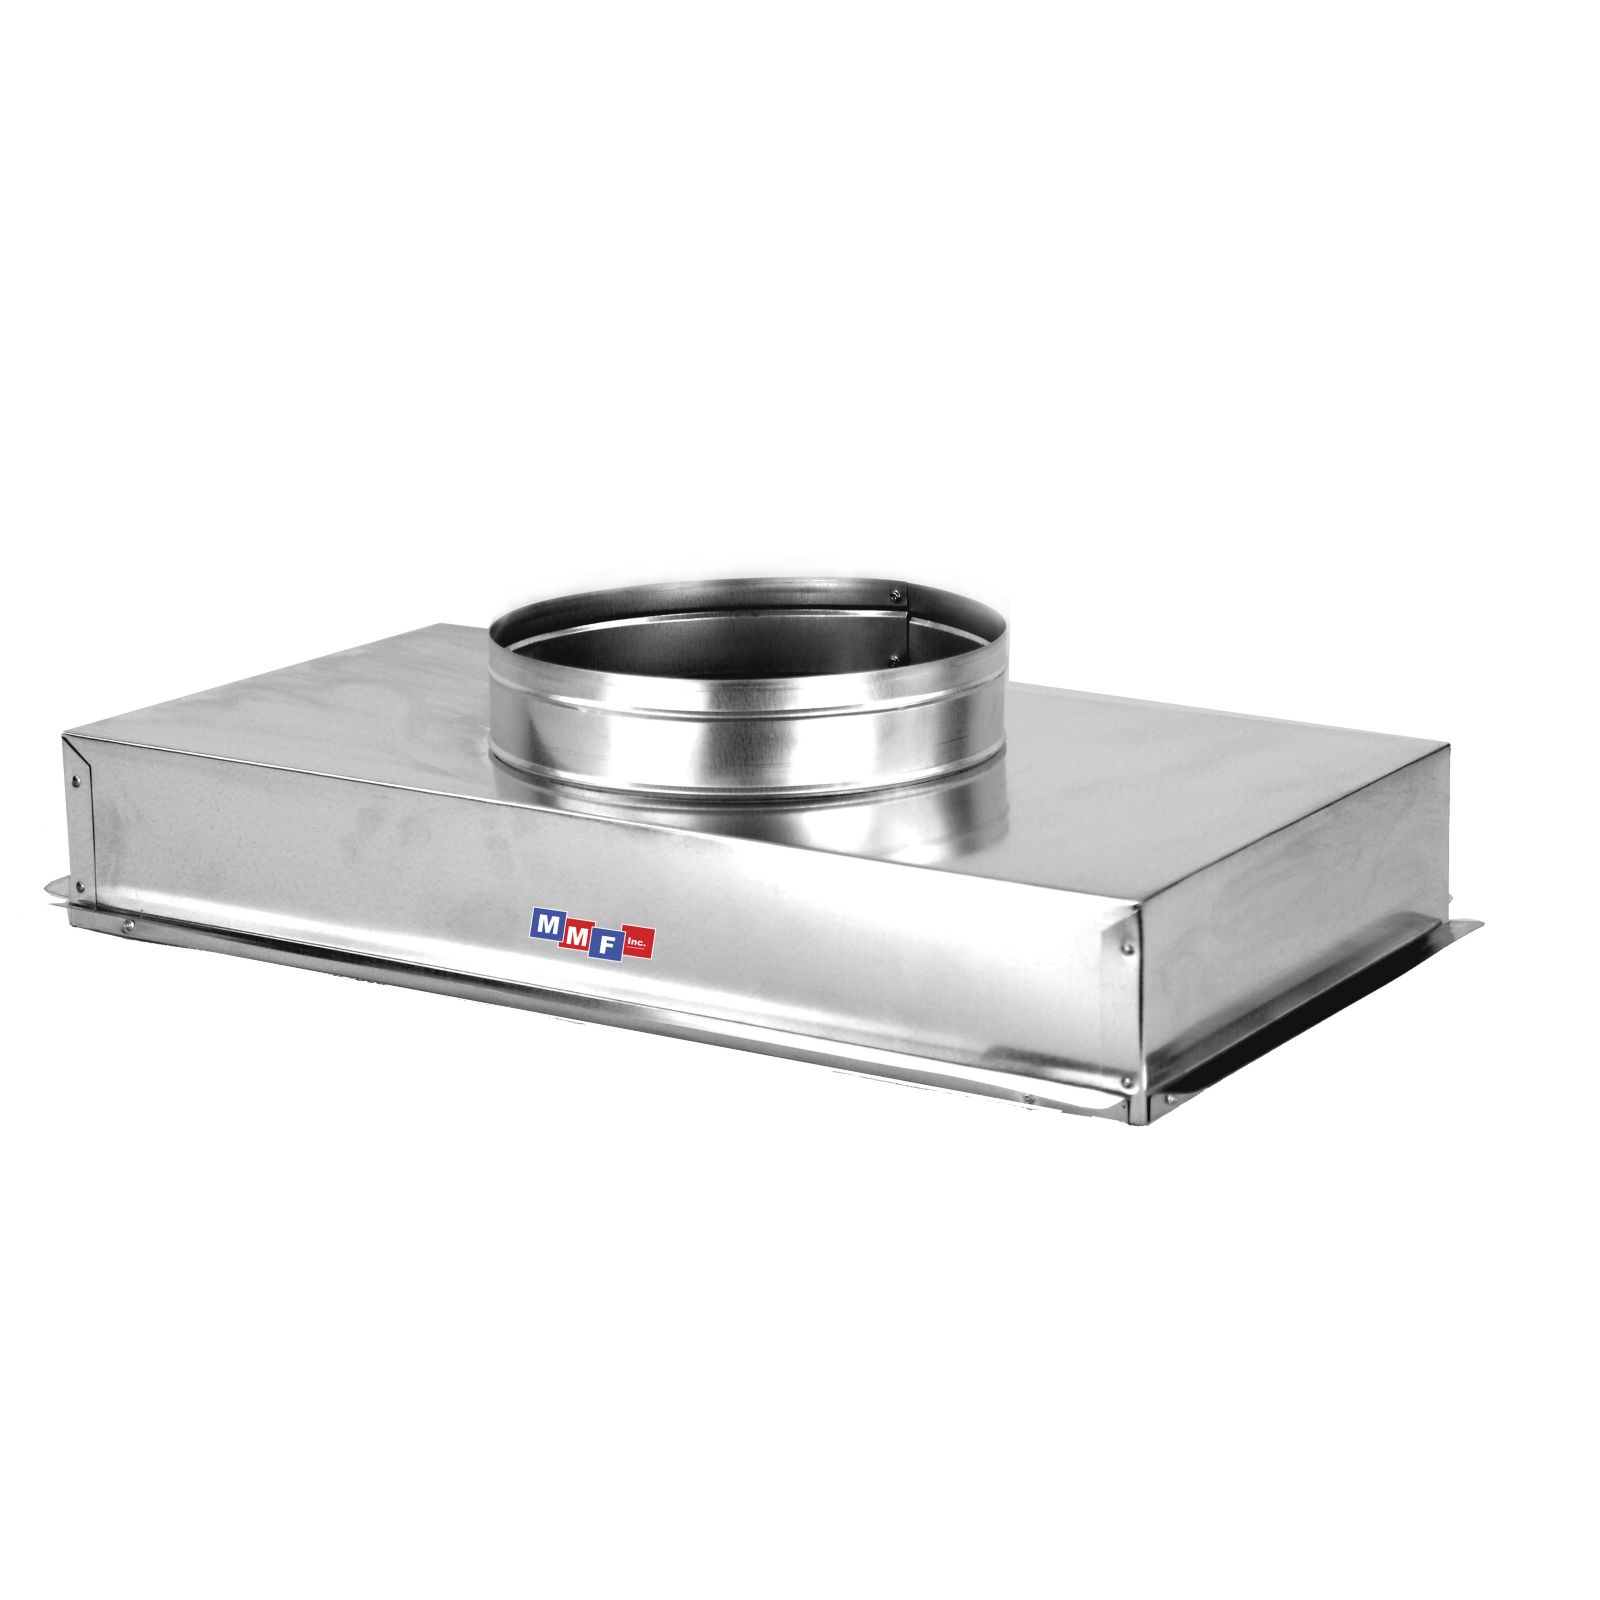 "Modular Metal ACRH2514AS - Return Air Can - 28 Gauge - Raw - Seal All Seams25 1/4"" X 14 1/4"" Uninsulated - 4"" High"